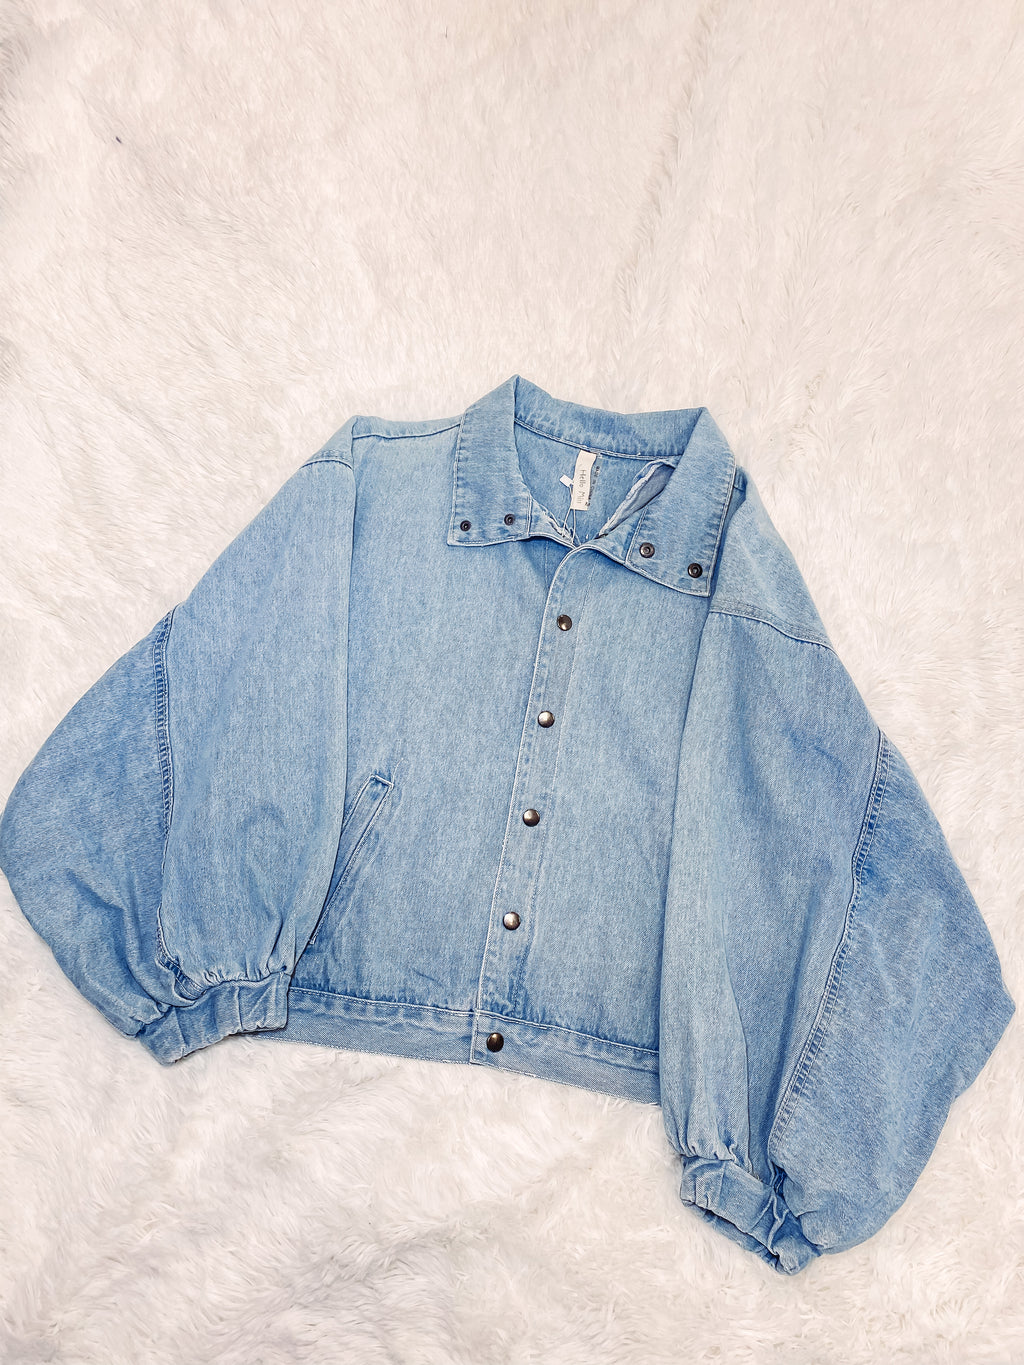 Oversized Jean Jacket - Blue